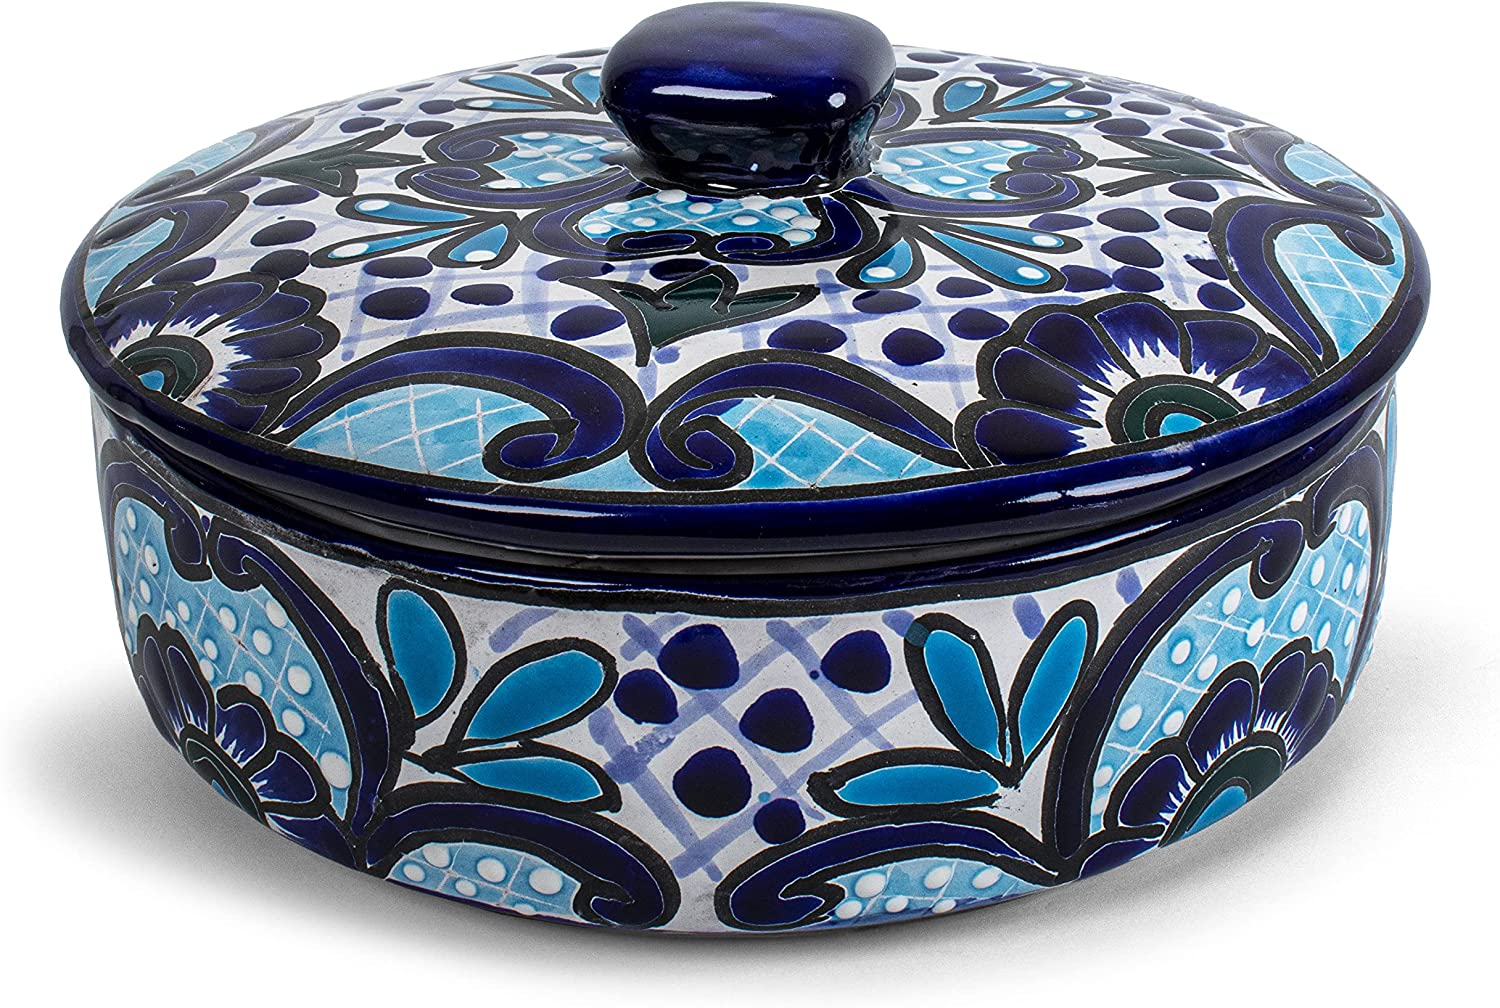 Genuine Mexican Talavera unisex Hand Tortillero Ceramic 2021 autumn and winter new Painted Tortill